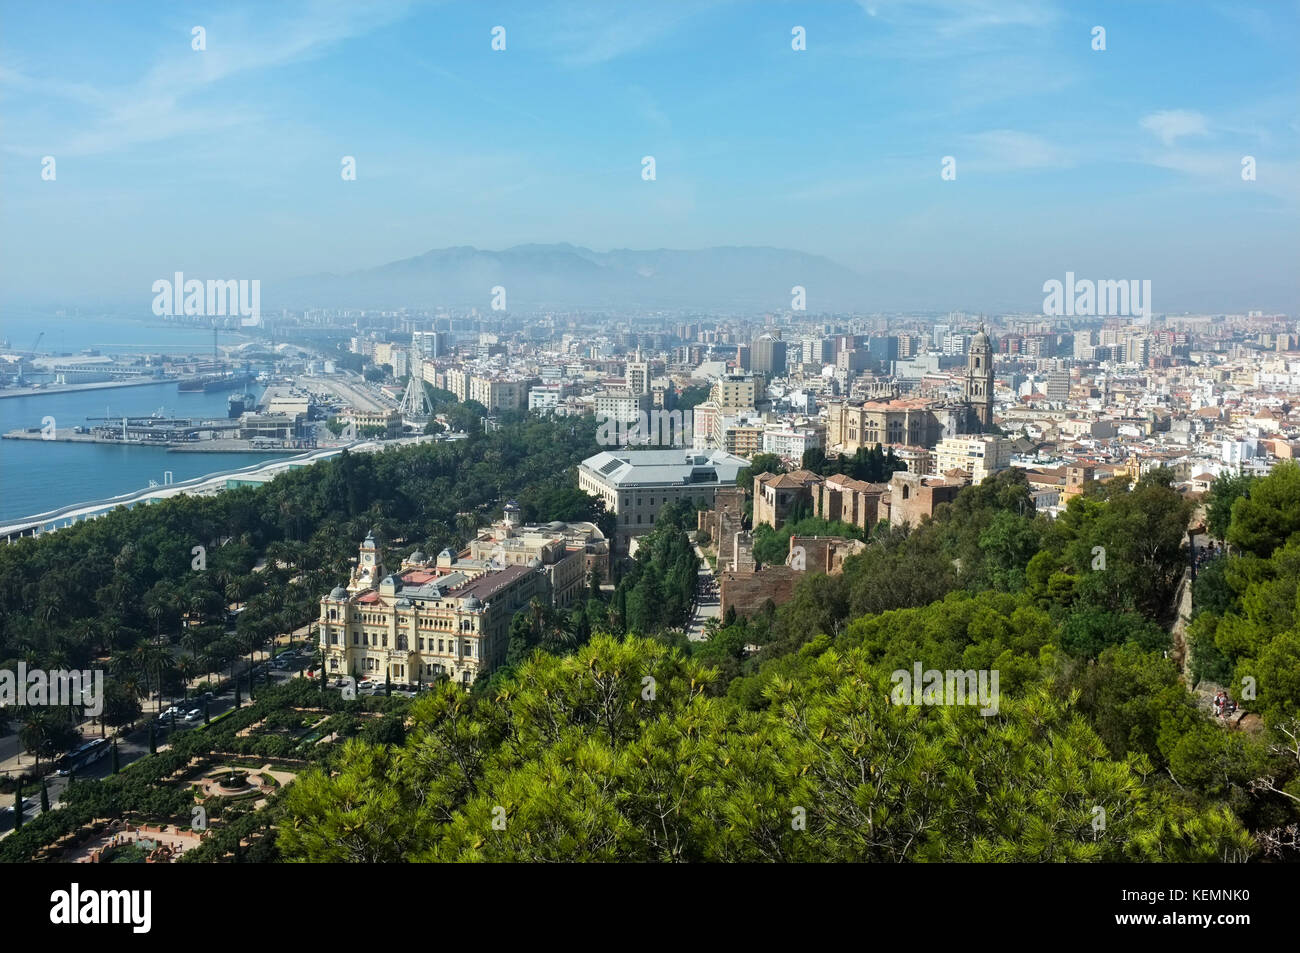 View looking westwards over the city centre from the castillo (castle) on Mount Gibralfaro, Malaga, Andalucia, Spain, - Stock Image